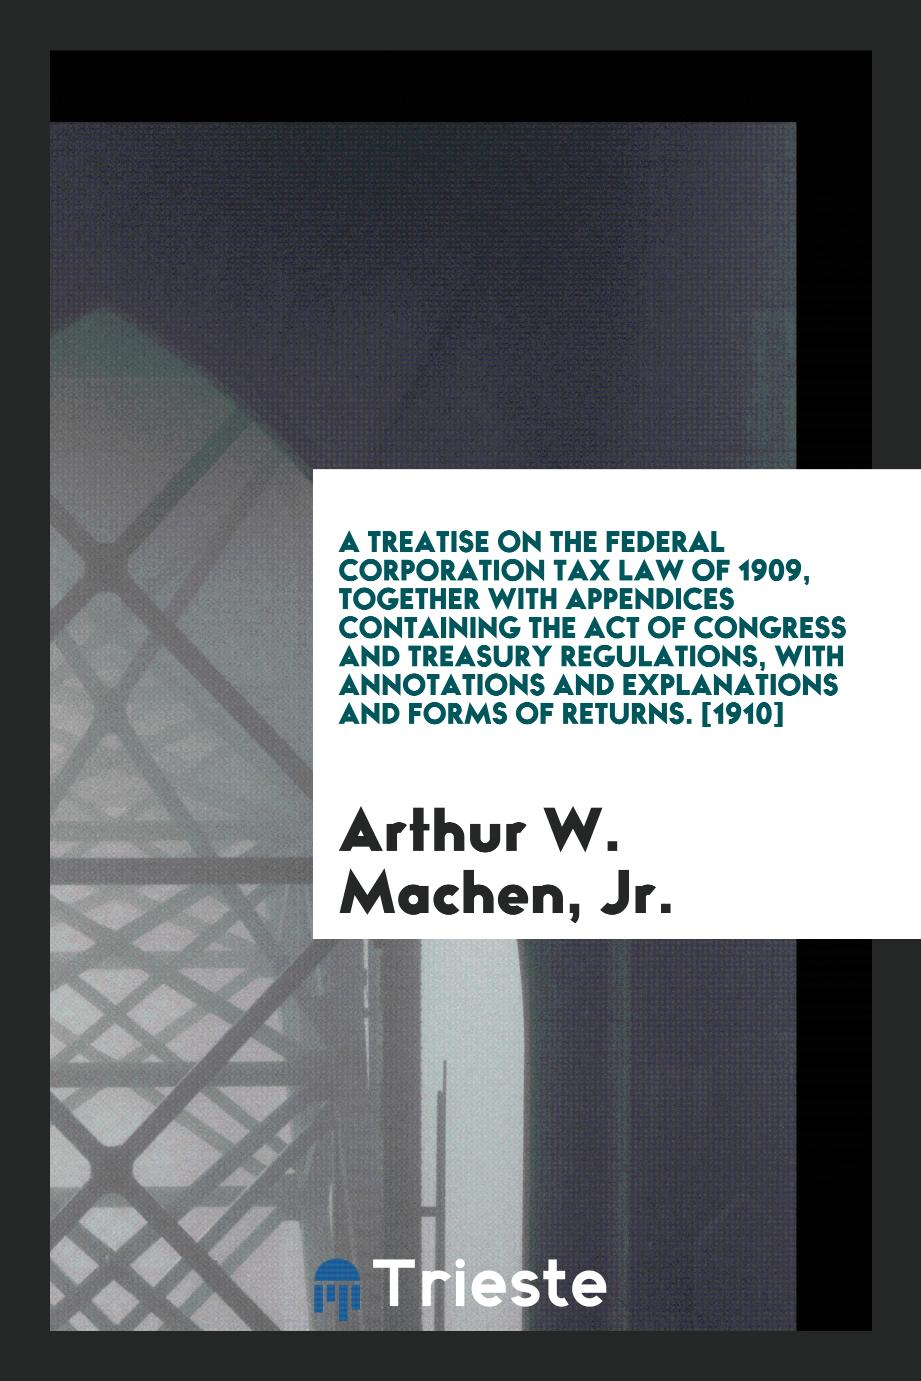 A Treatise on the Federal Corporation Tax Law of 1909, Together with Appendices Containing the Act of Congress and Treasury Regulations, with Annotations and Explanations and Forms of Returns. [1910]